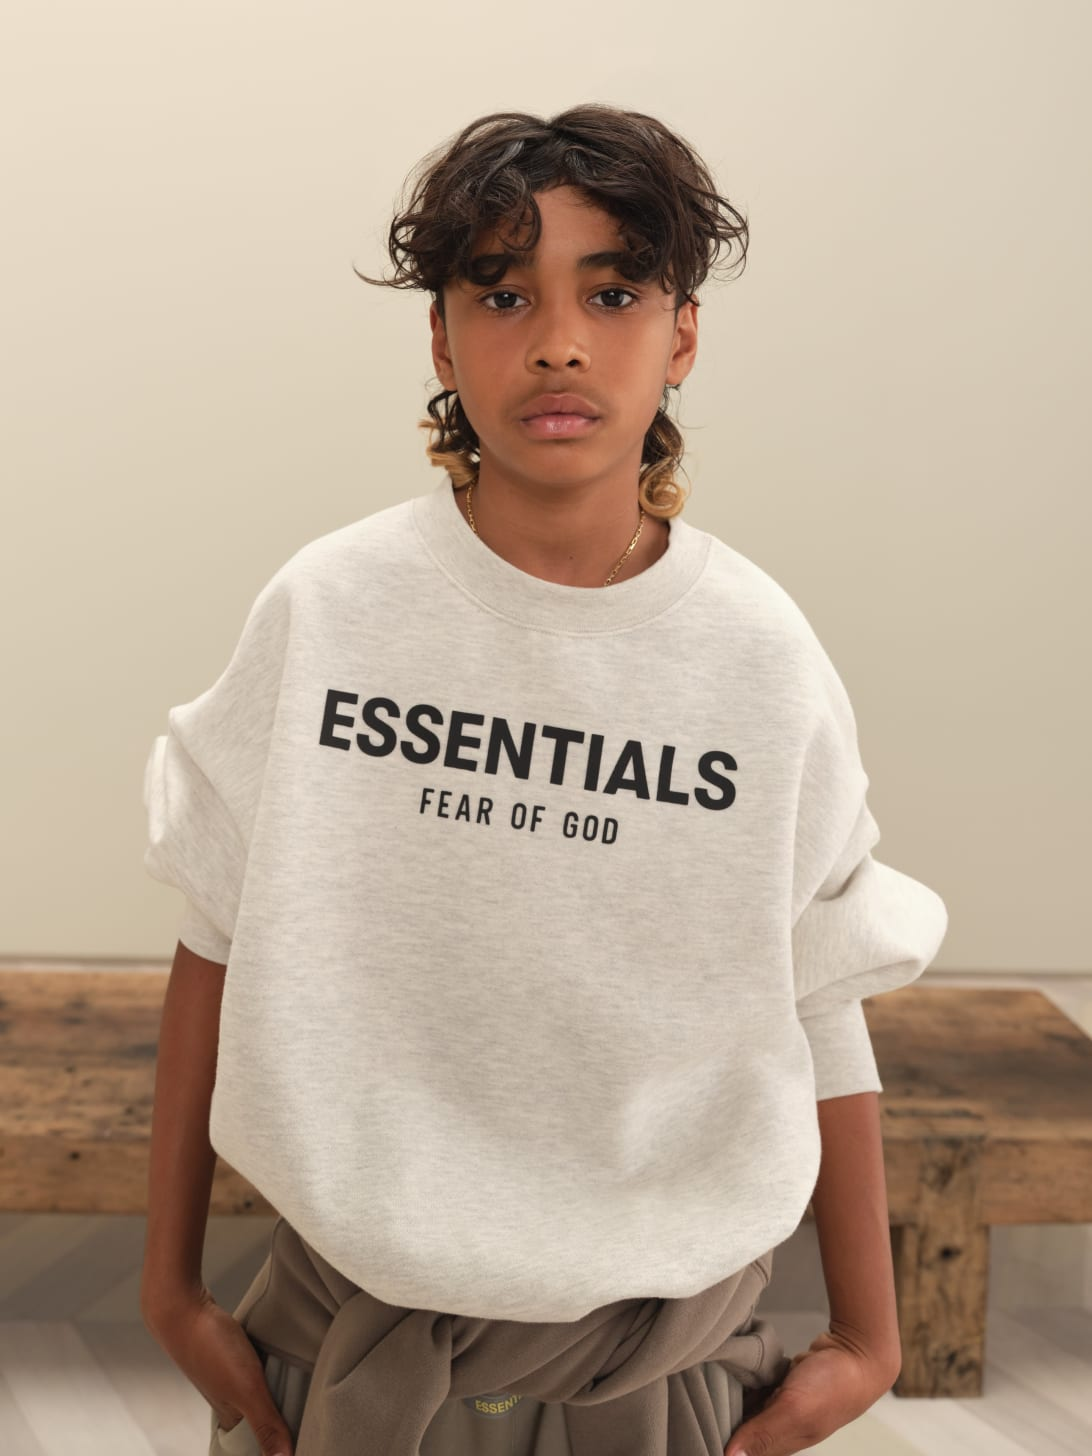 fear of god essentials spring delivery 21 lookbook 1 19 Fear of God ESSENTIALS 2021 tavasz